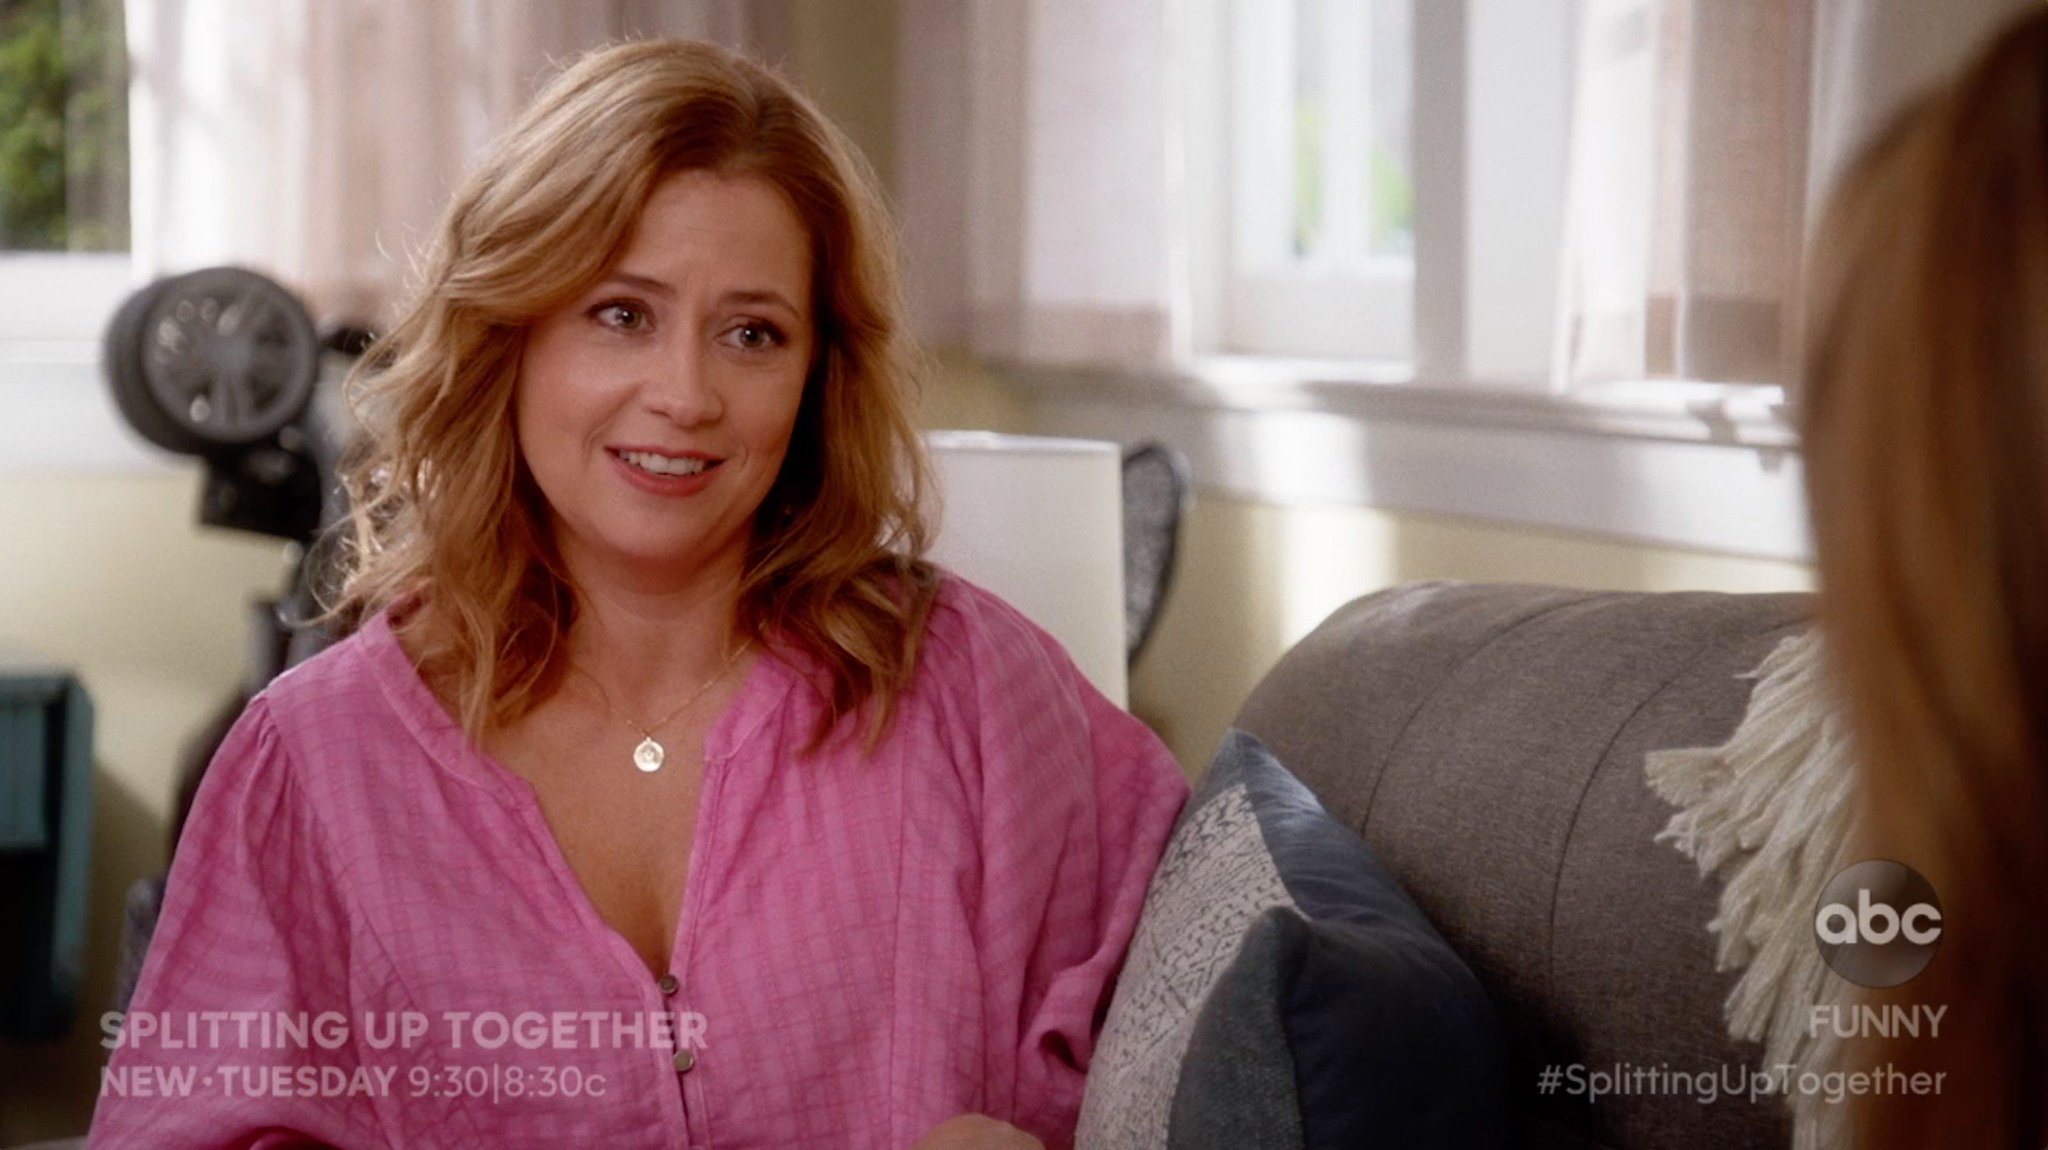 Tomorrow's #SplittingUpTogether is gonna be a real deuceorooney. https://t.co/lVg4YxM9Gl